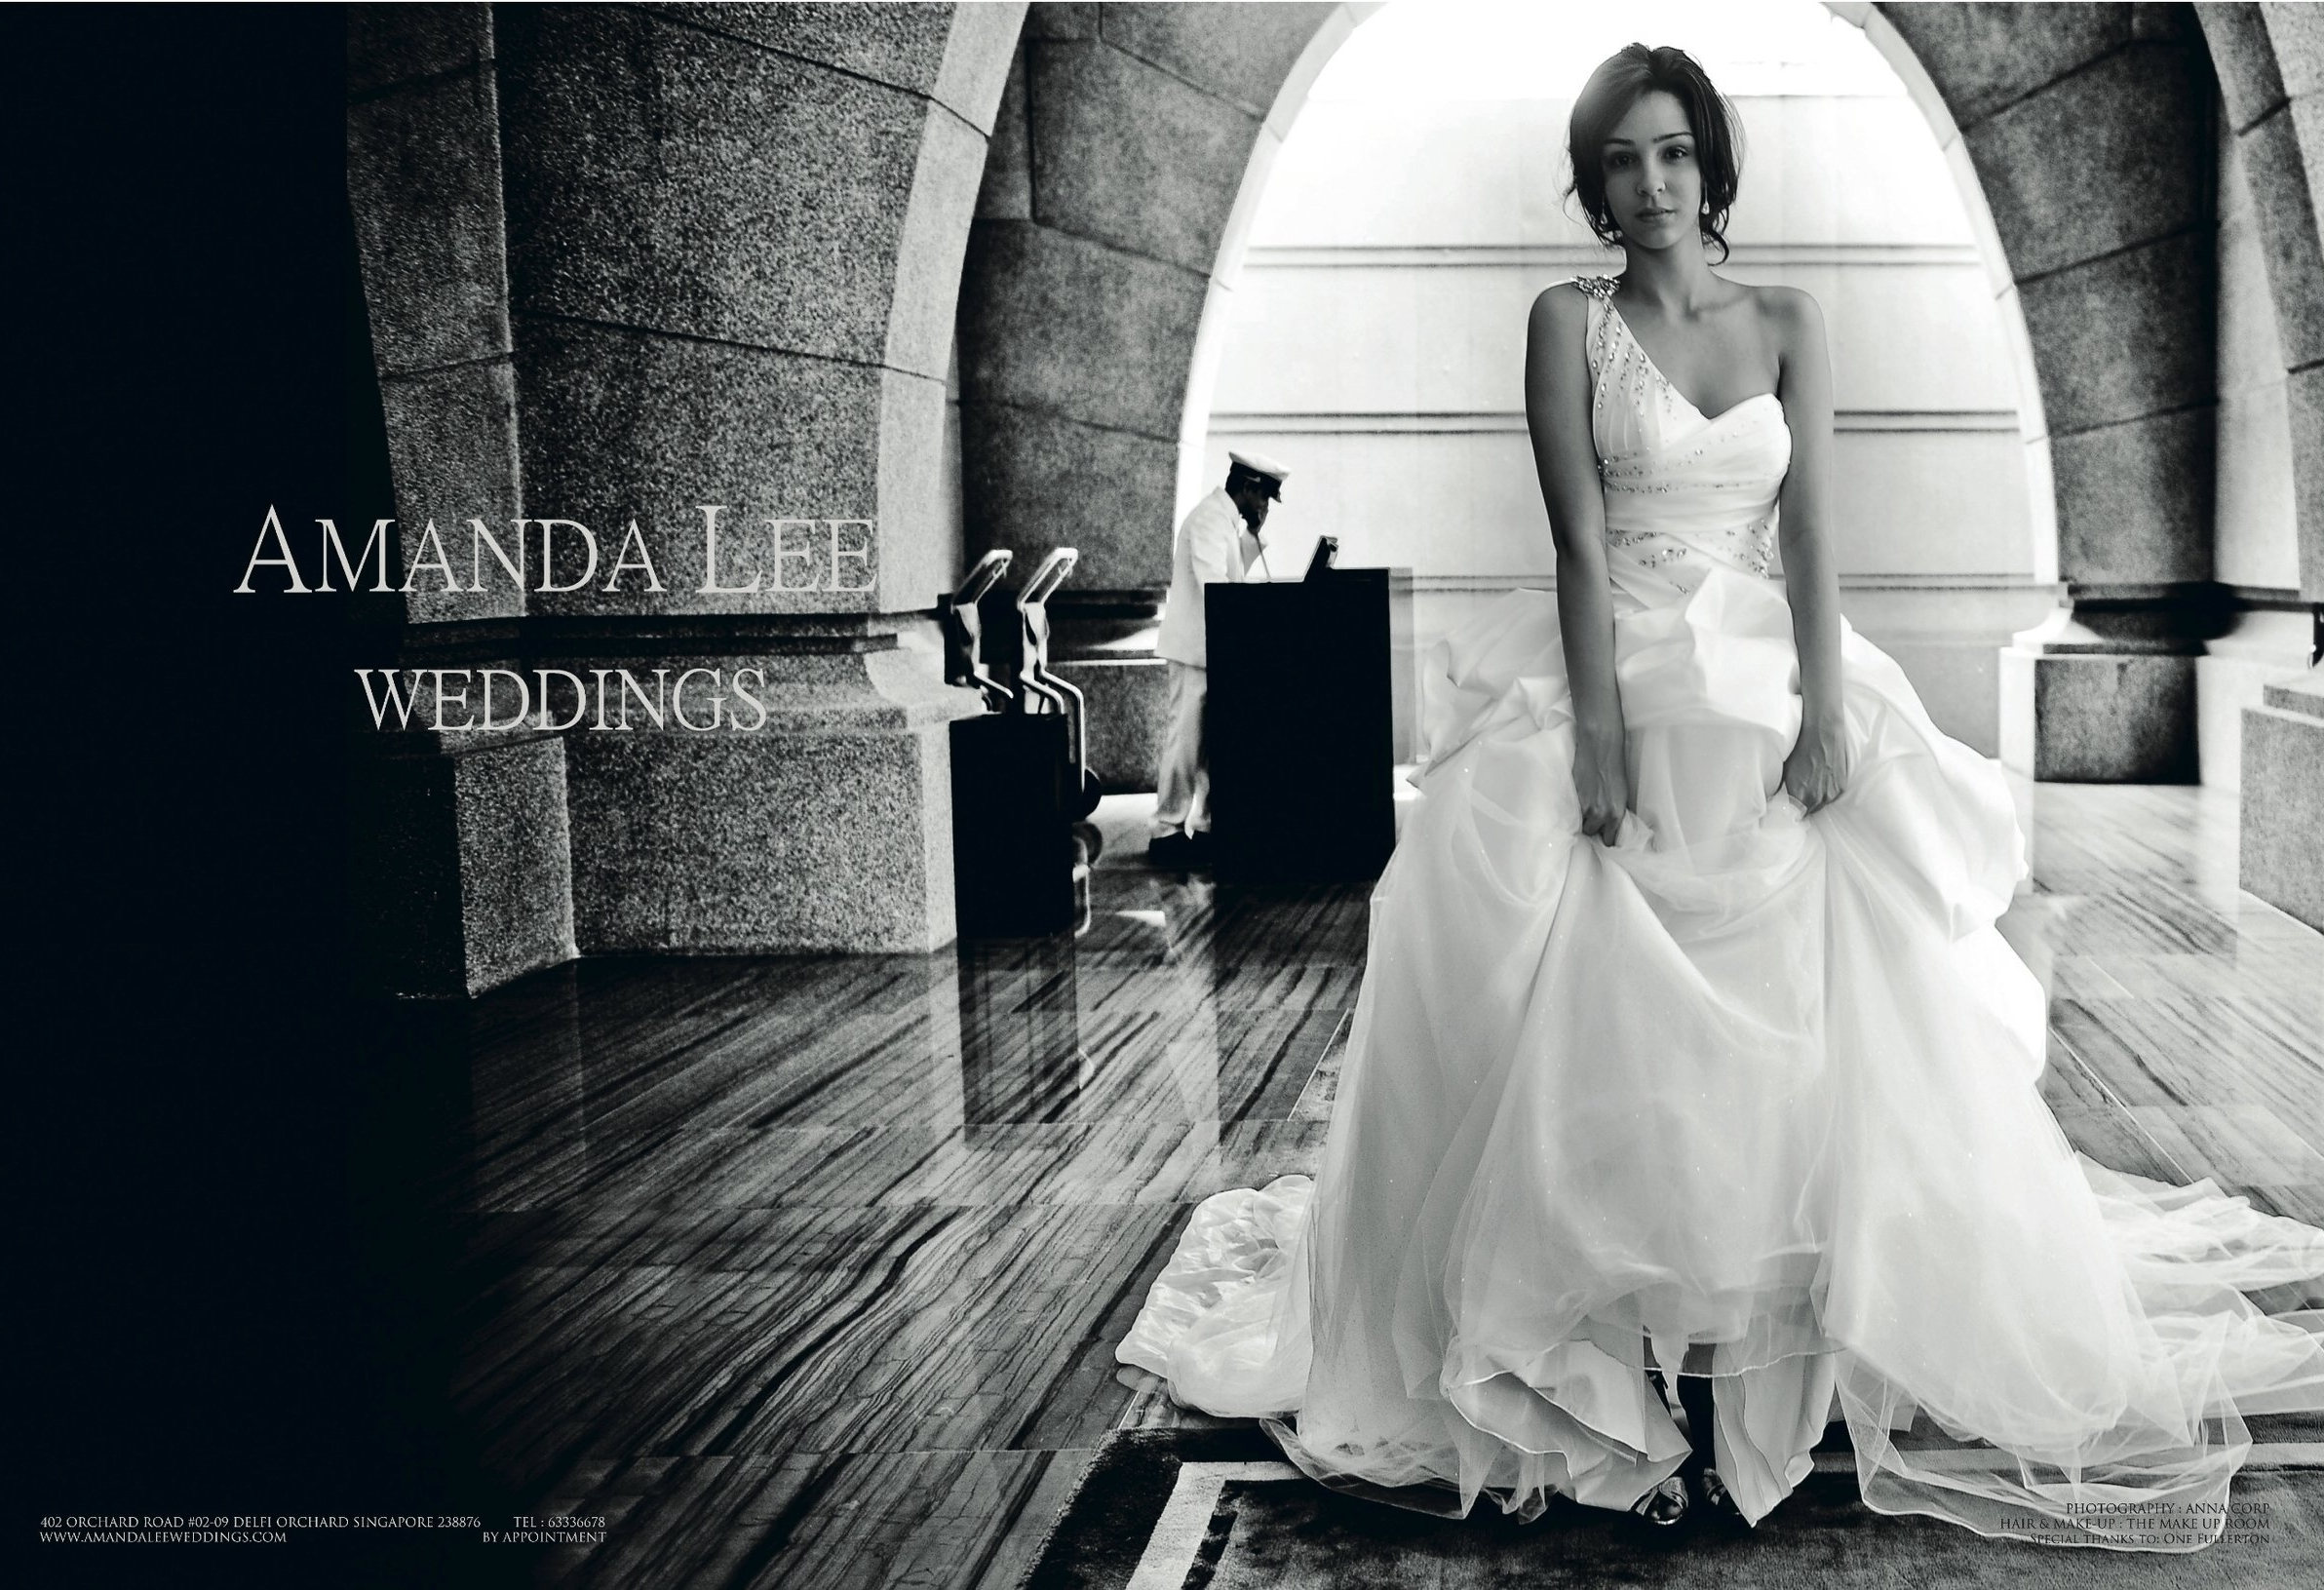 """- Toga, crystals embellishments, layers, textures etc etc... following this campaign, brides became more receptive of asymmetrical details, and began exploring interesting design elements. The classic ballgown also took a twist here. There's just enough """"oomph"""" in the design that somehow still gives a youthful and elegant look, which worked very well for our brides."""